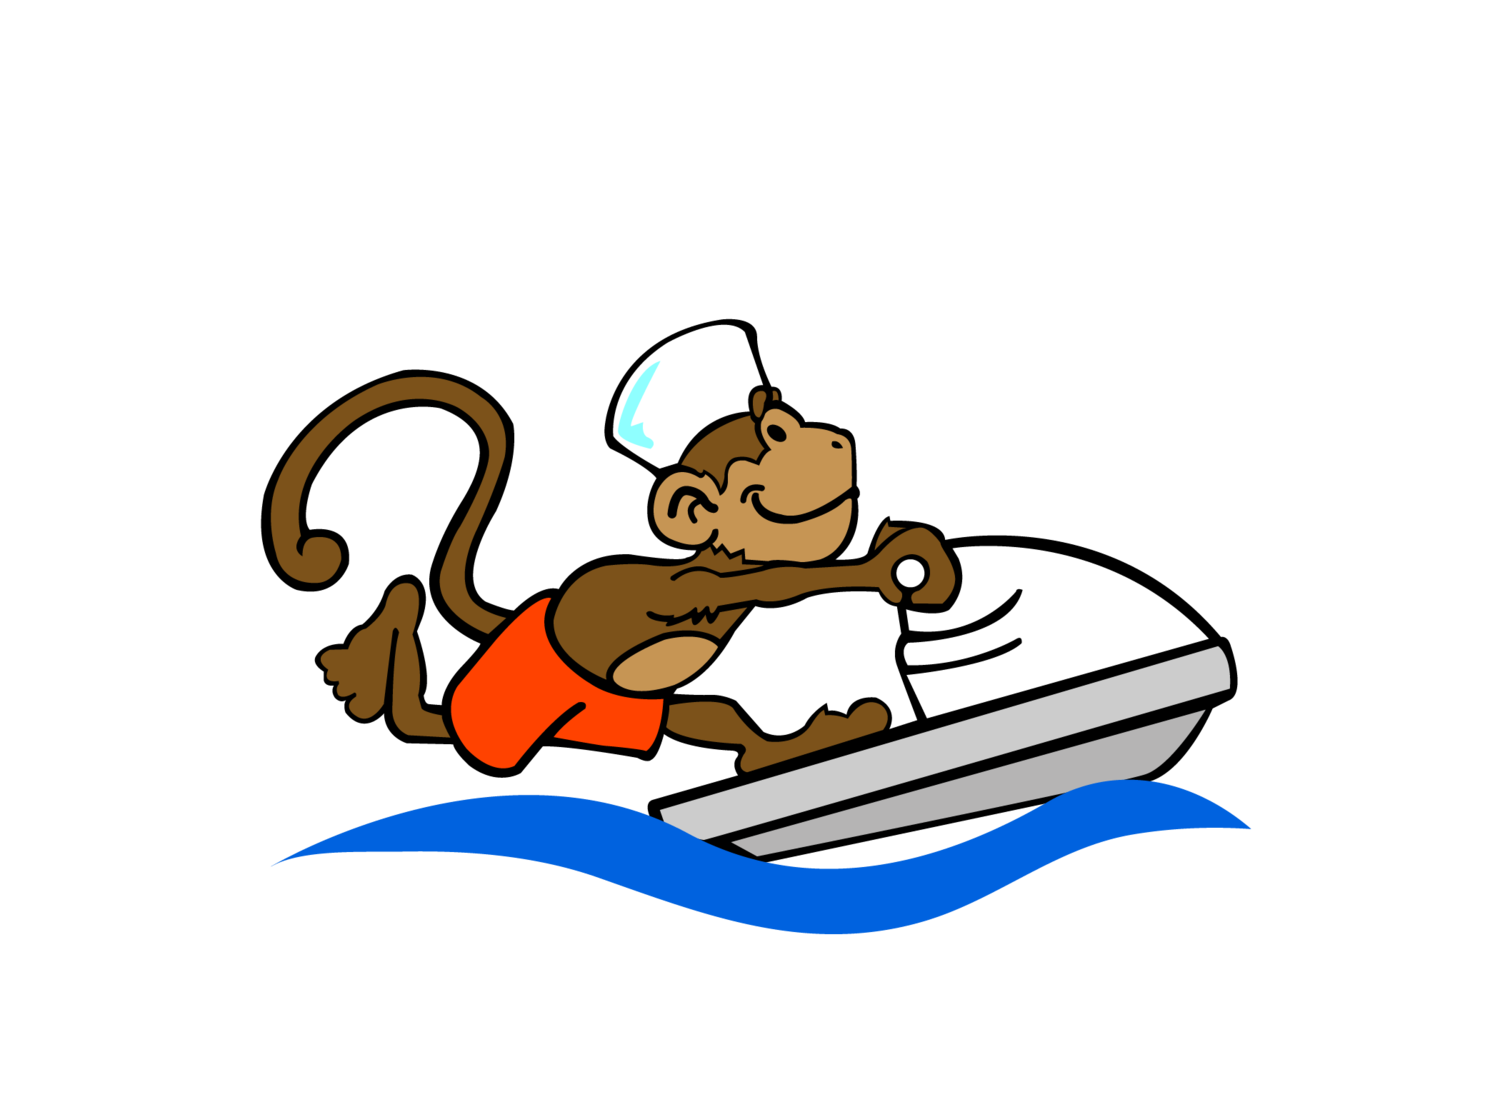 Boating clipart occurrence. Nature tours sea monkeys